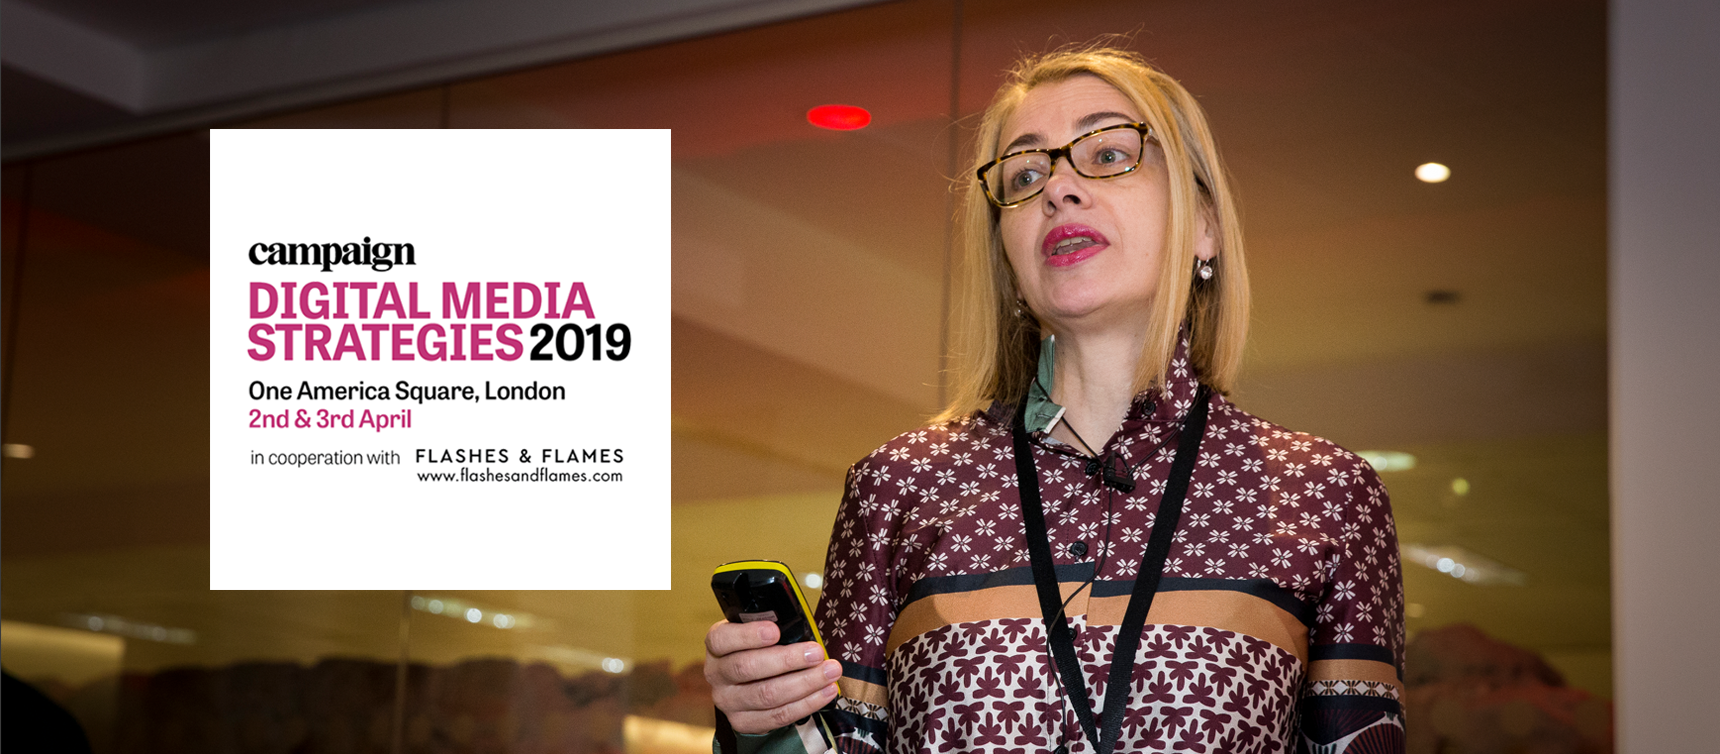 Kinga Incze speaking at Digital Media Strategies 2019 Conference